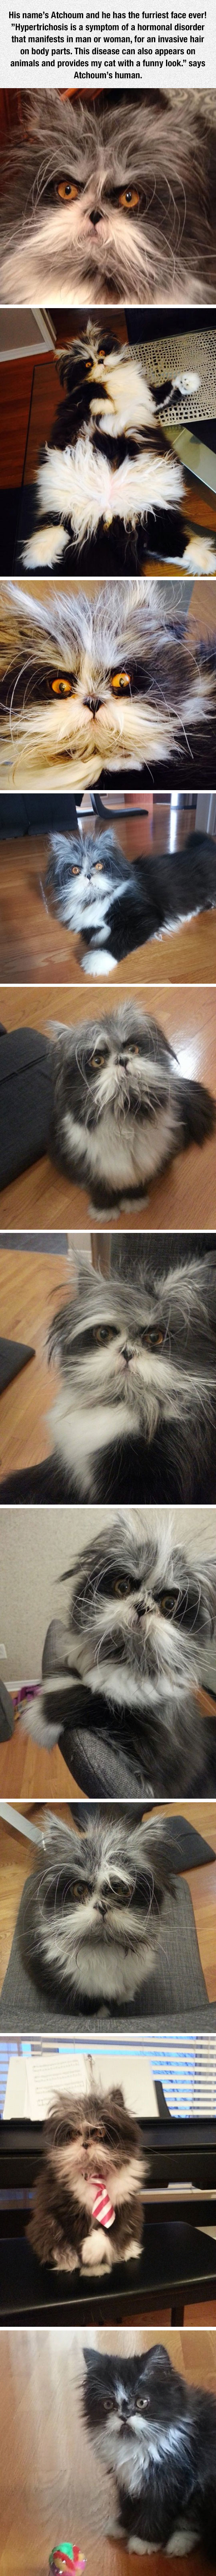 The Furriest Face Ever